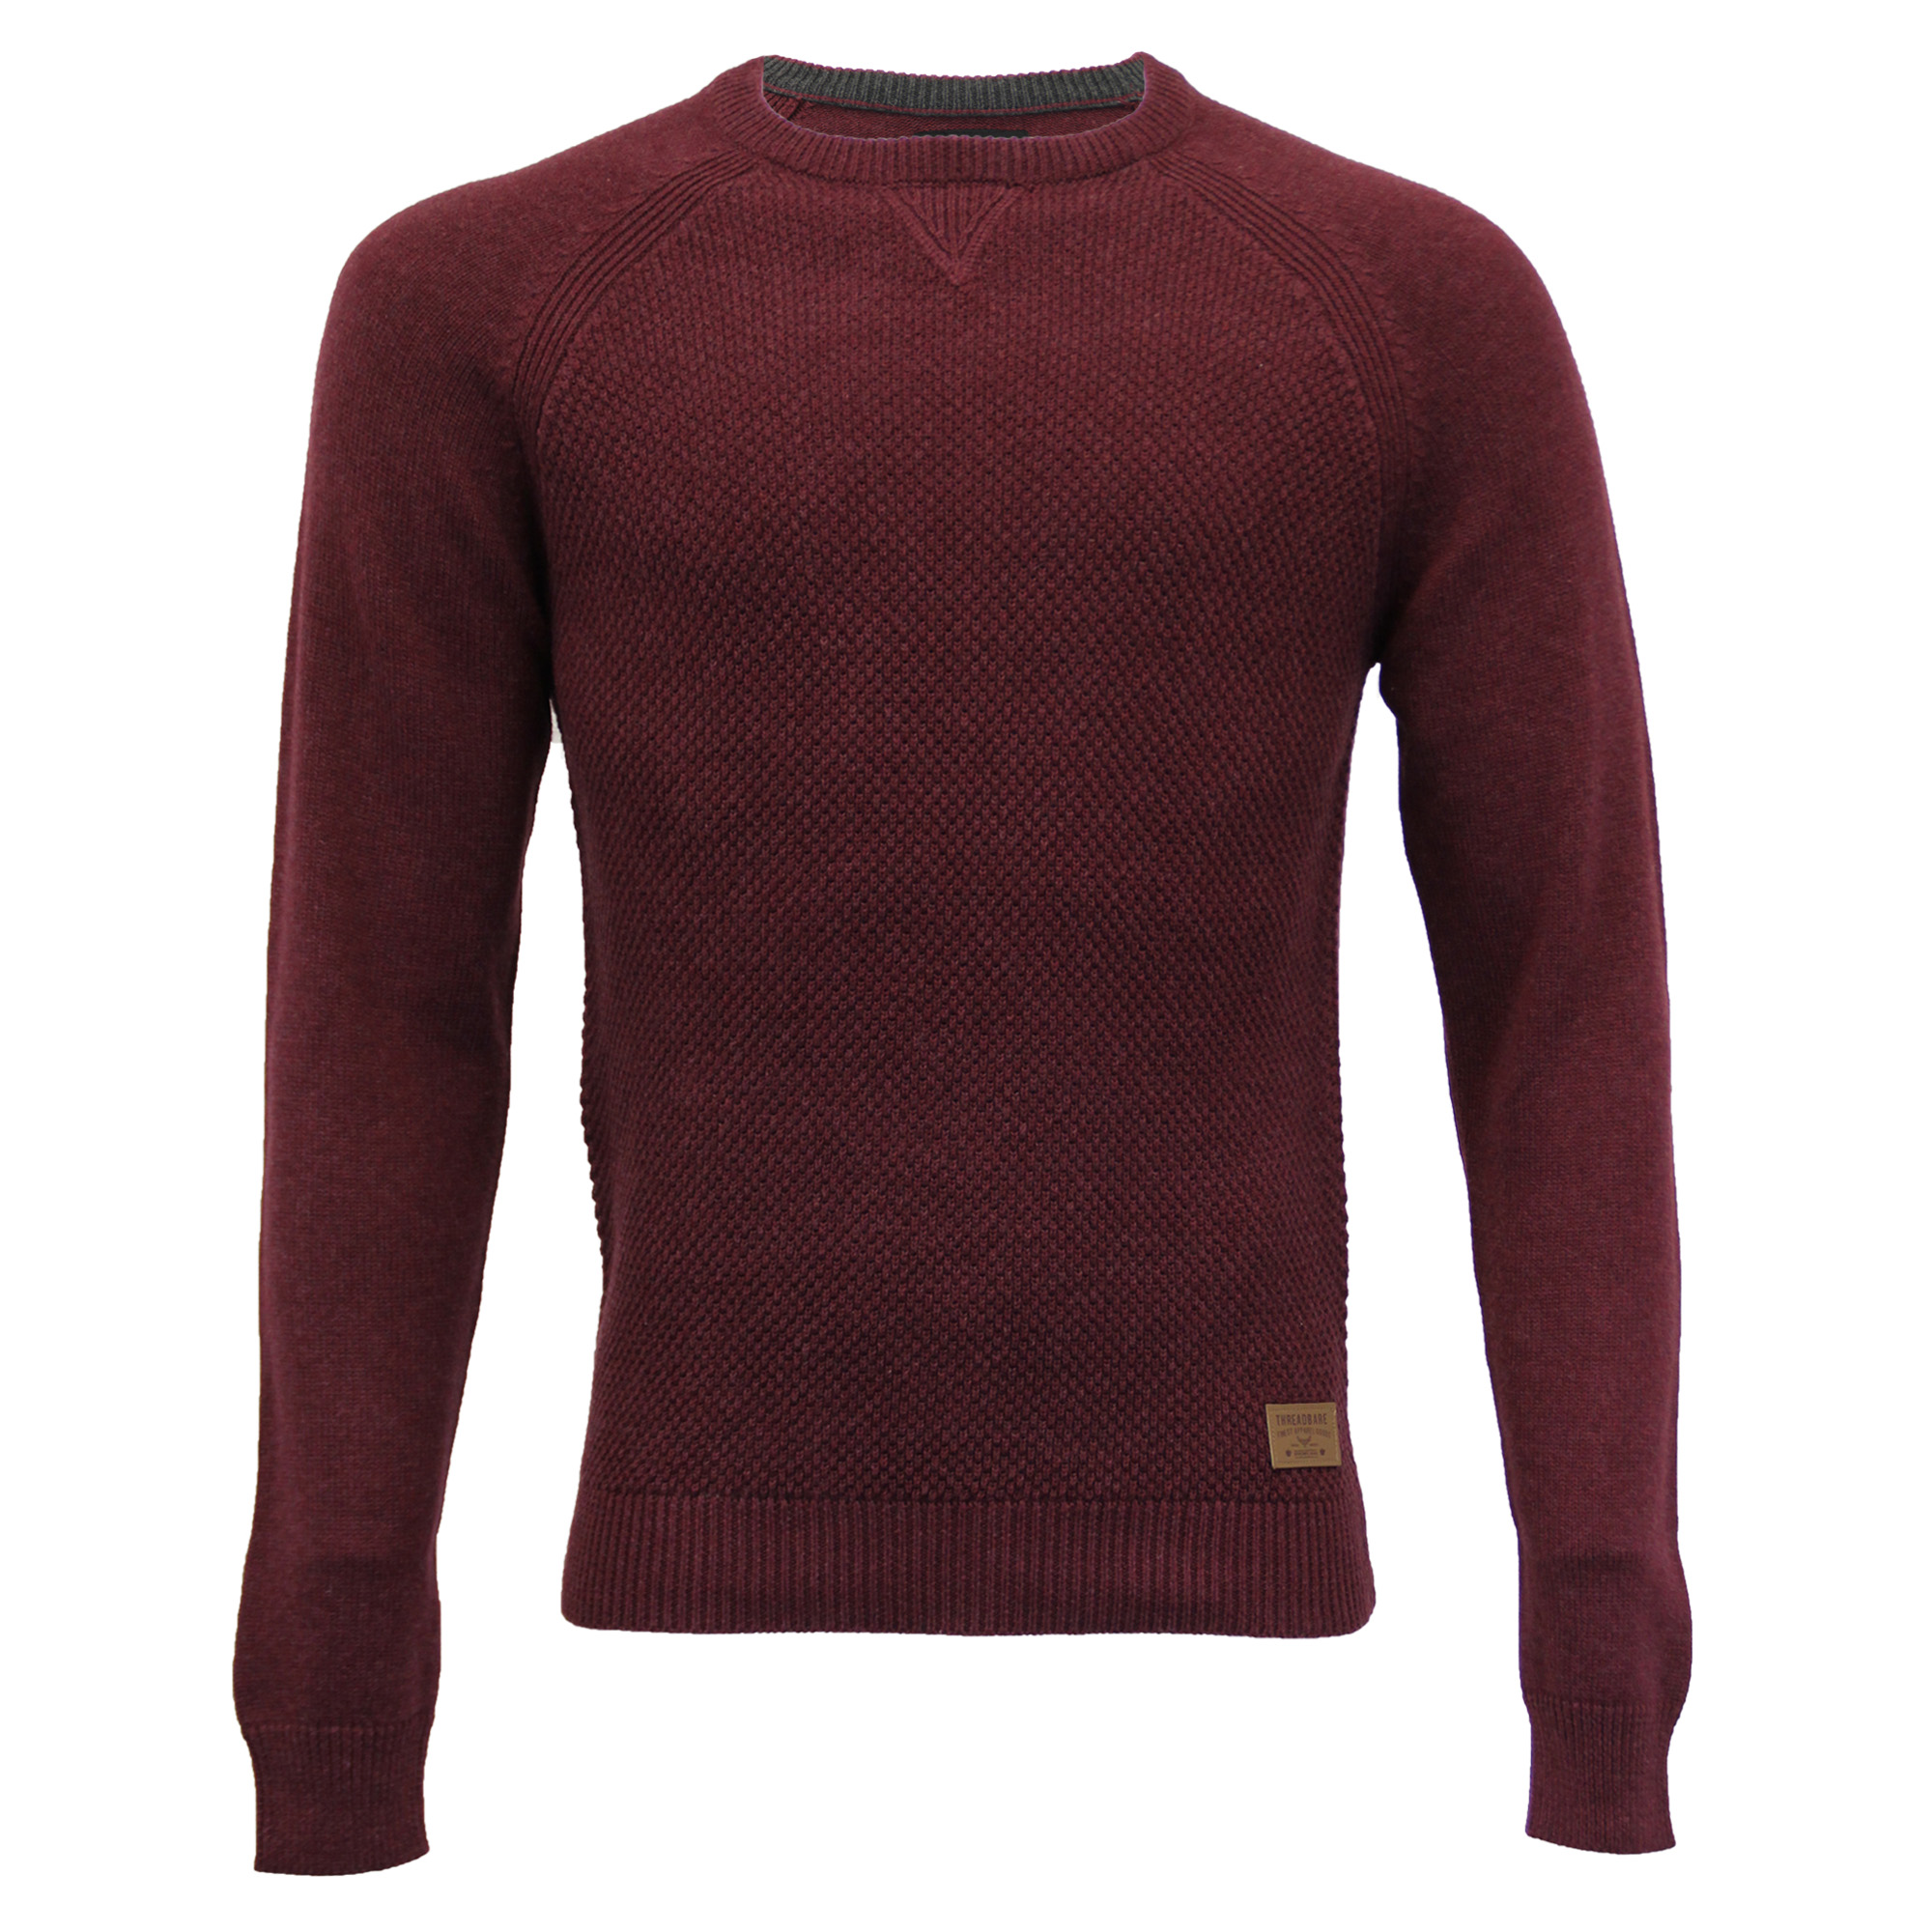 Mens-Jumper-Threadbare-Knitted-Cotton-Sweater-Half-Zip-Pullover-Top-Winter-New thumbnail 10